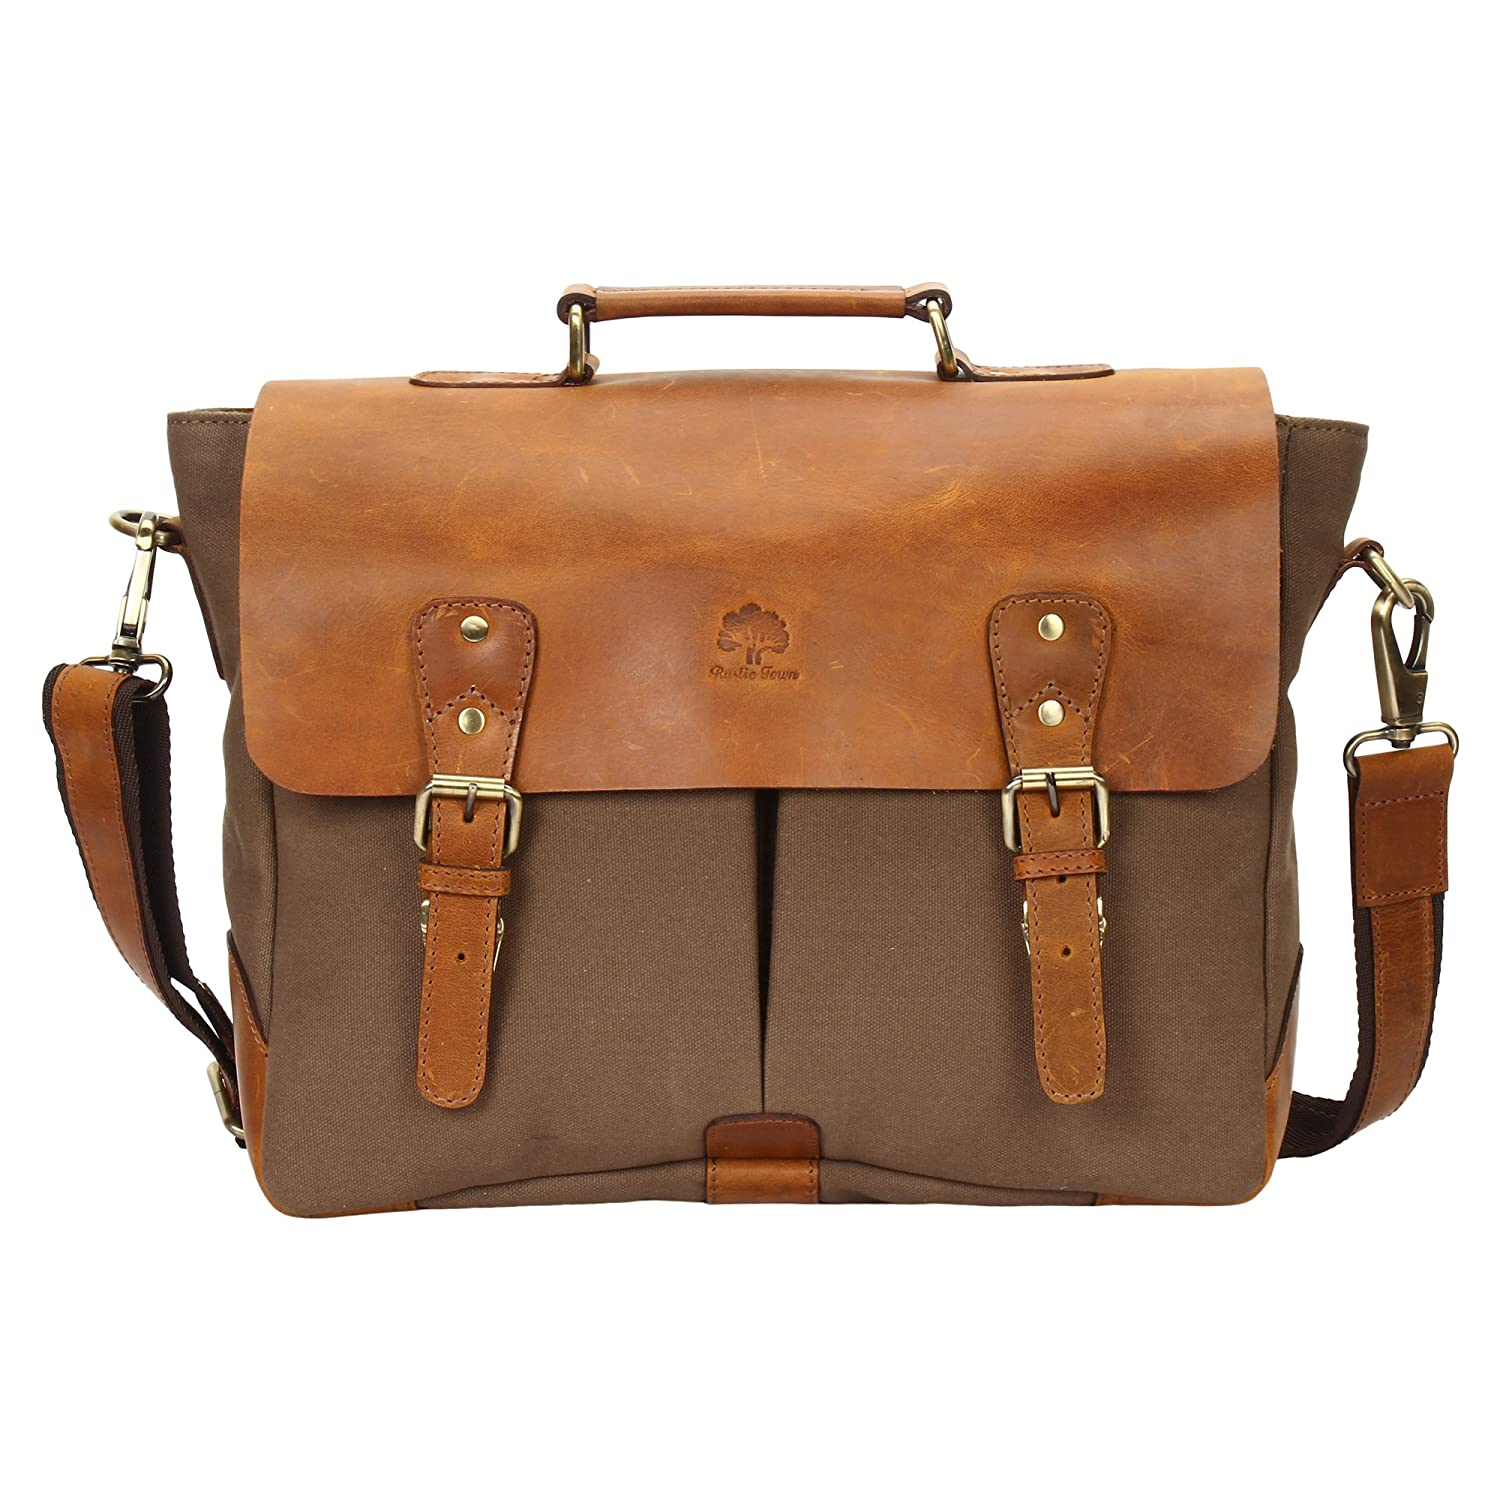 15 Inch Rustic Town Handmade Leather Canvas Vintage Crossbody Messenger Bag Gift Men Women Travel Work ~ Carry Laptop Computer Books ~ Sling Shoulder Bag ~ Everyday Office College School Satchel RusticTown SHC151104ADN-OG